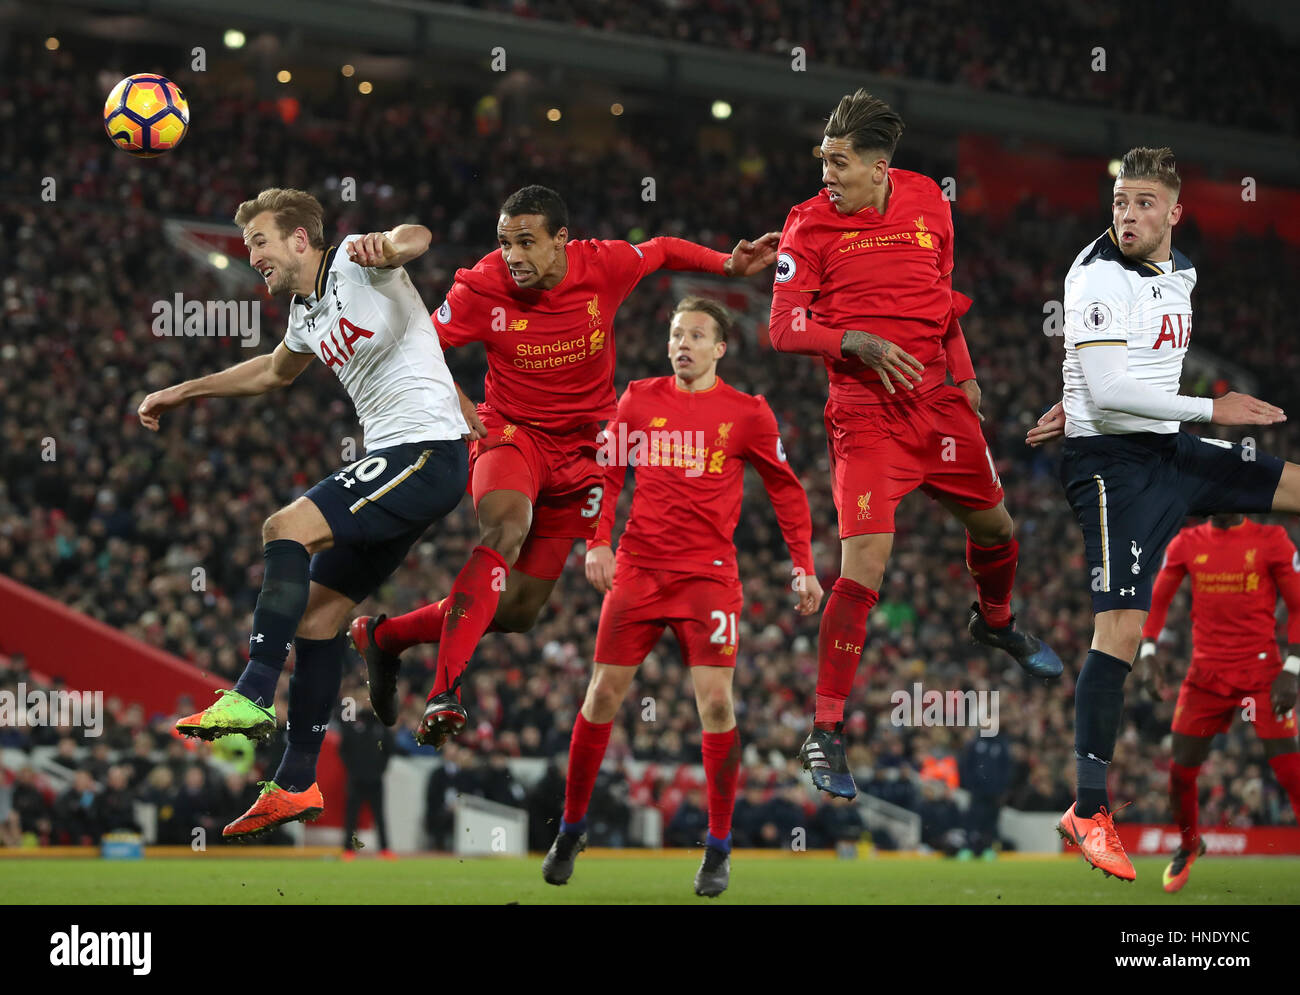 Tottenham Hotspur's Harry Kane (left) and Liverpool's Joel Matip battle for the ball during the Premier League match Stock Photo